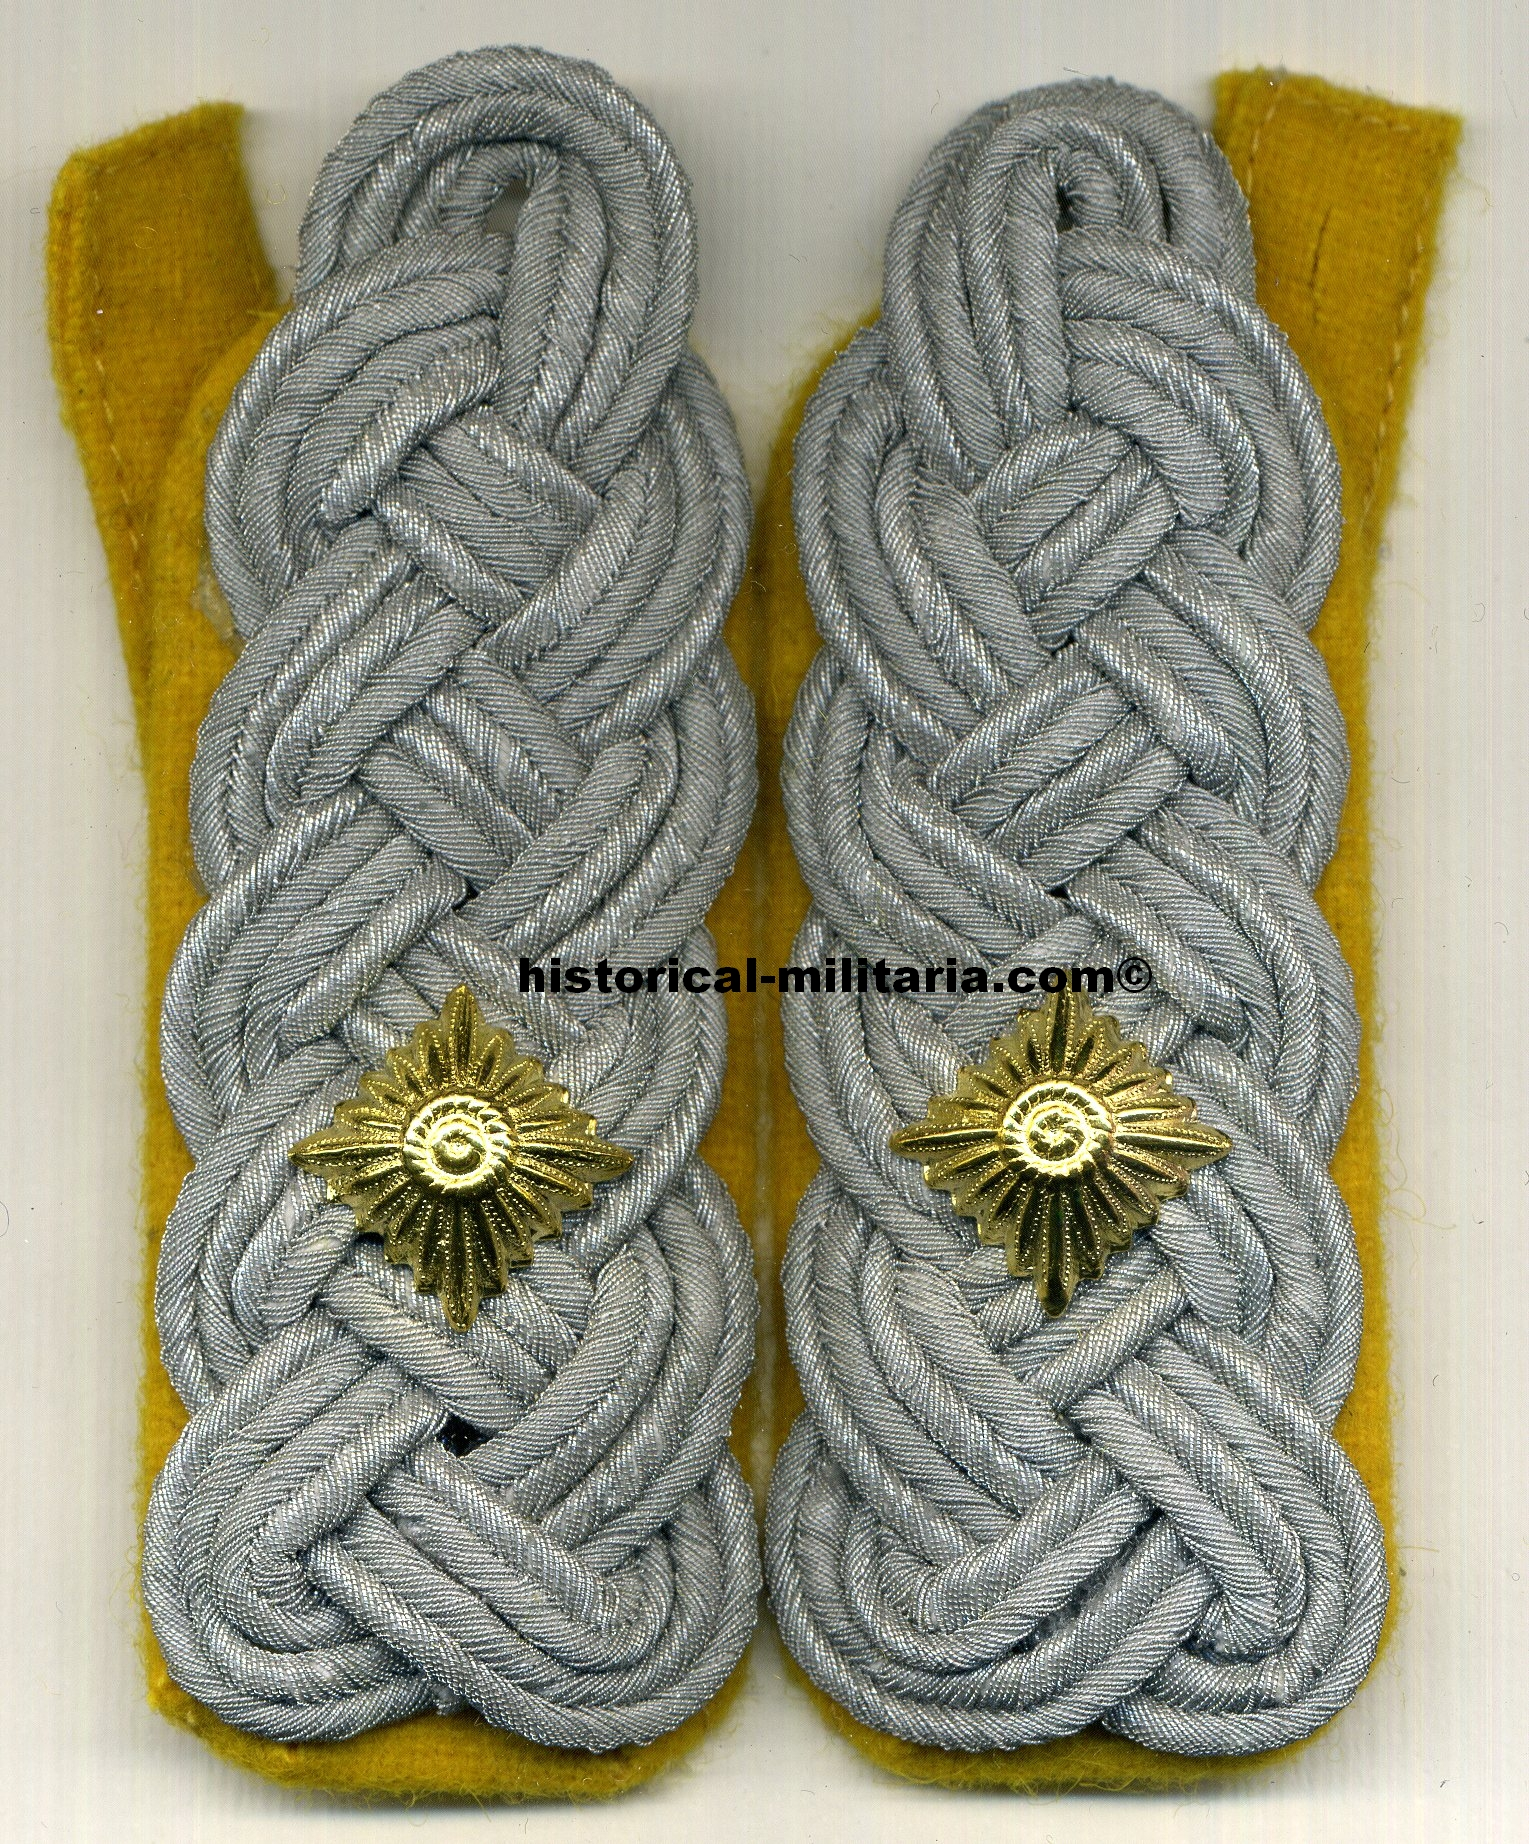 Luftwaffe Flieger Oberstleutnant Flieger Schulterklappen goldgelb Flight Lt. Colonel slip-on shoulder boards matte cords on golden yellow - spalline da Tenente Colonnello